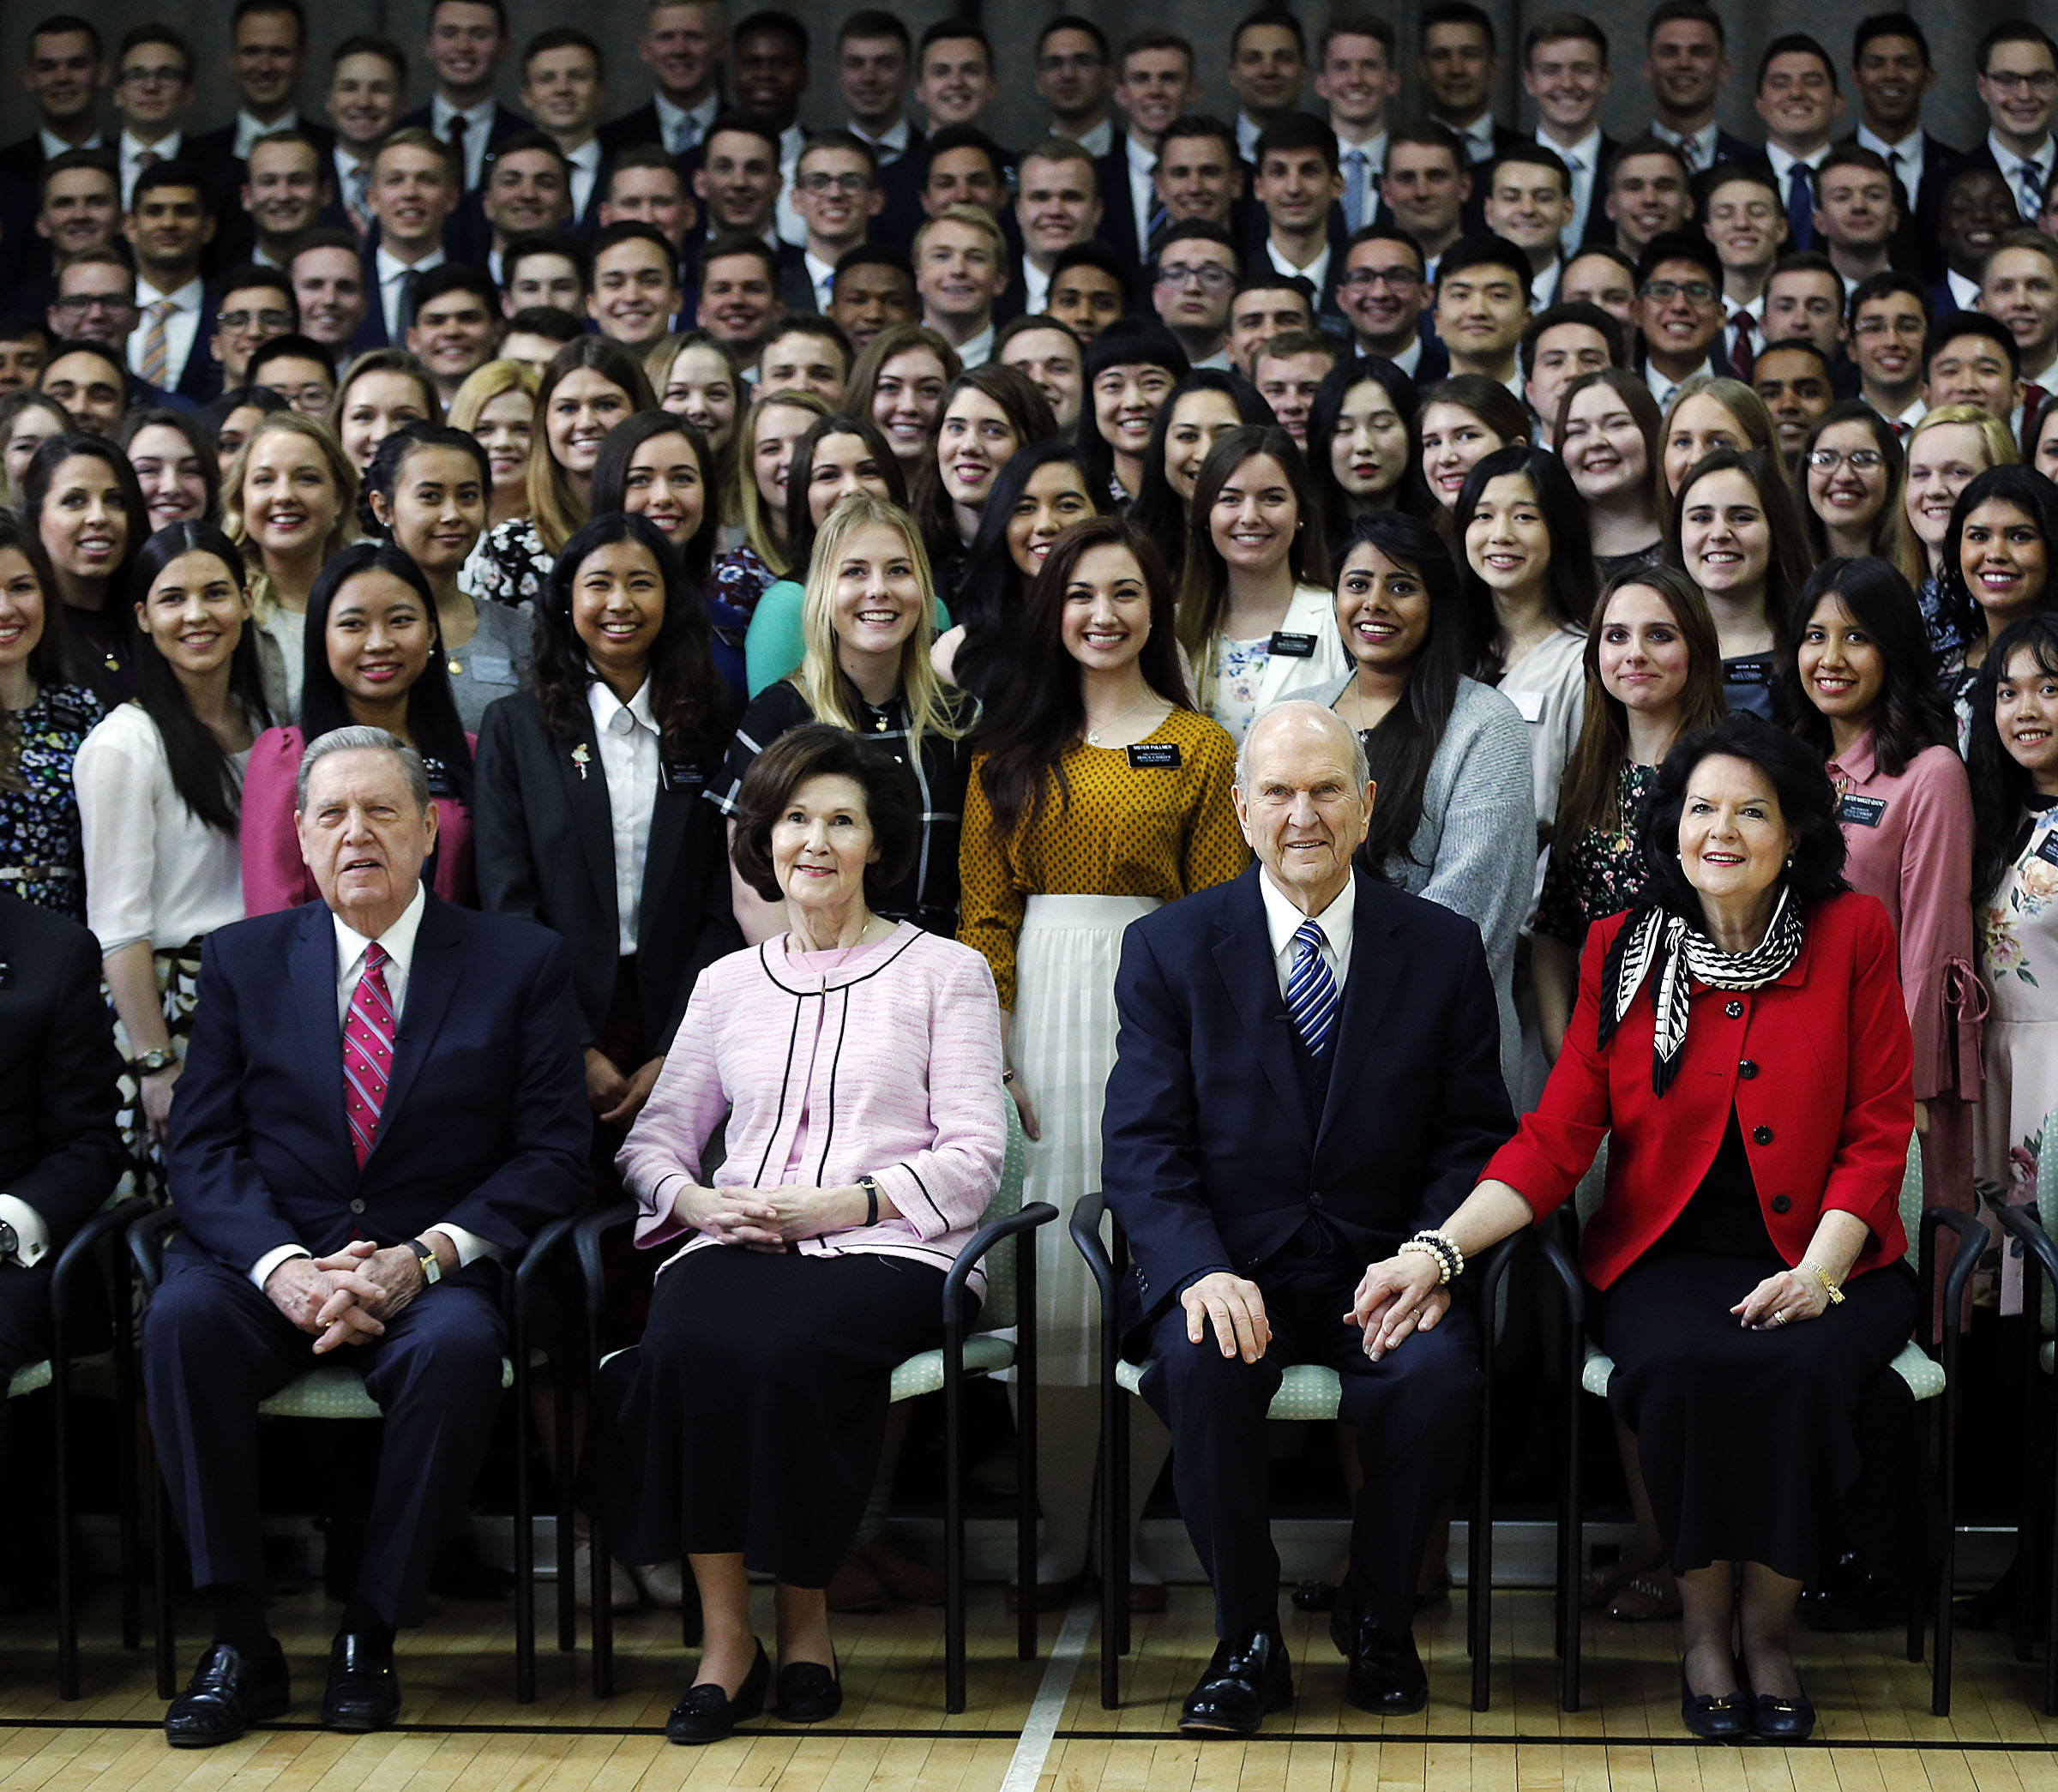 Elder Jeffrey R. Holland, left, Sister Patricia Holland, President Russell M. Nelson and Sister Wendy Nelson pose for a photo with missionaries at the Hyde Park Chapel in London on Thursday, April 12, 2018.